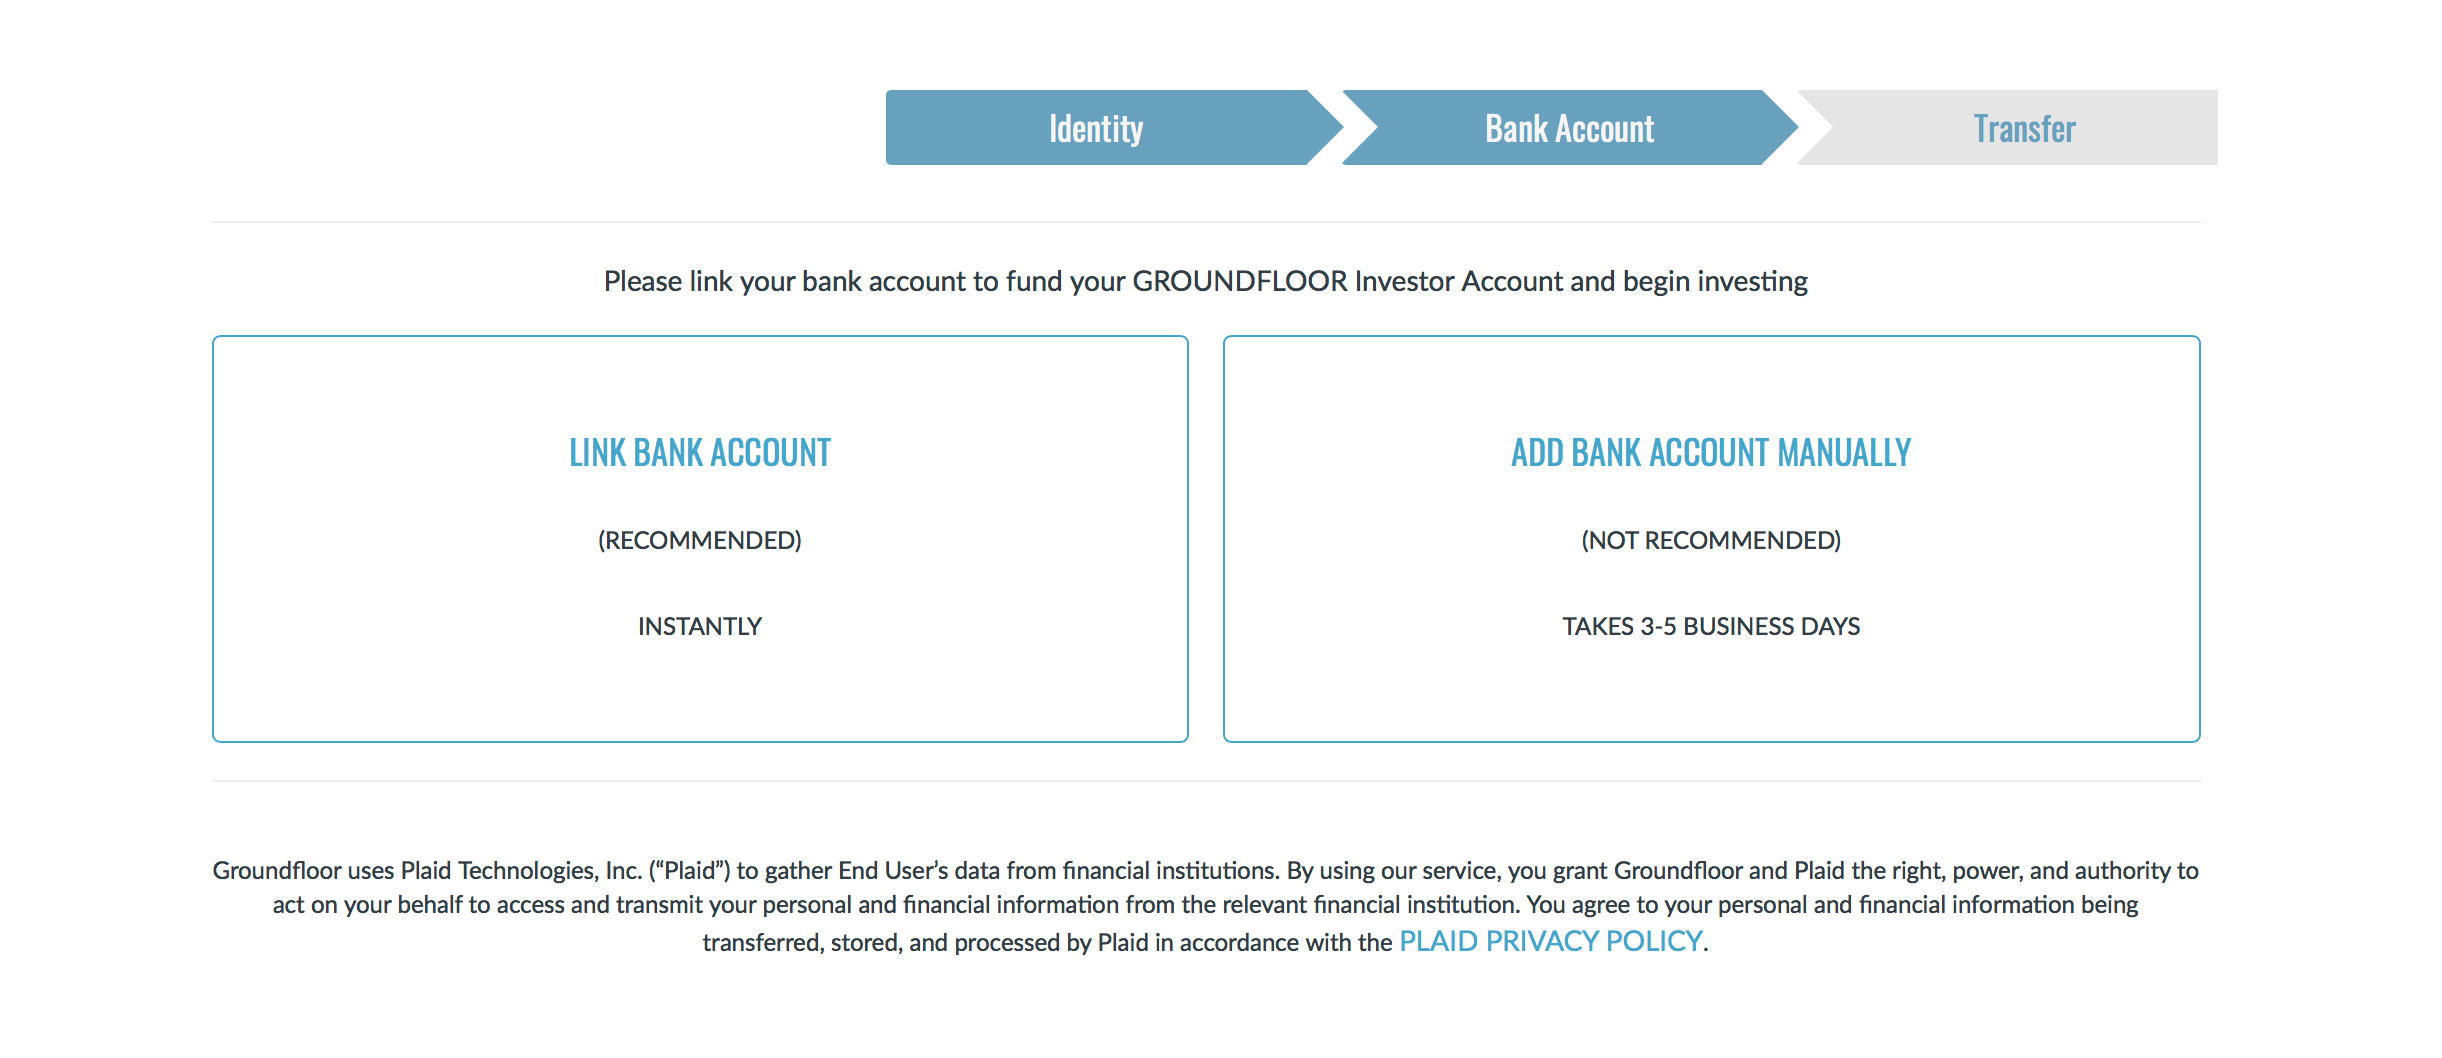 Linking A Bank Account - Step 3